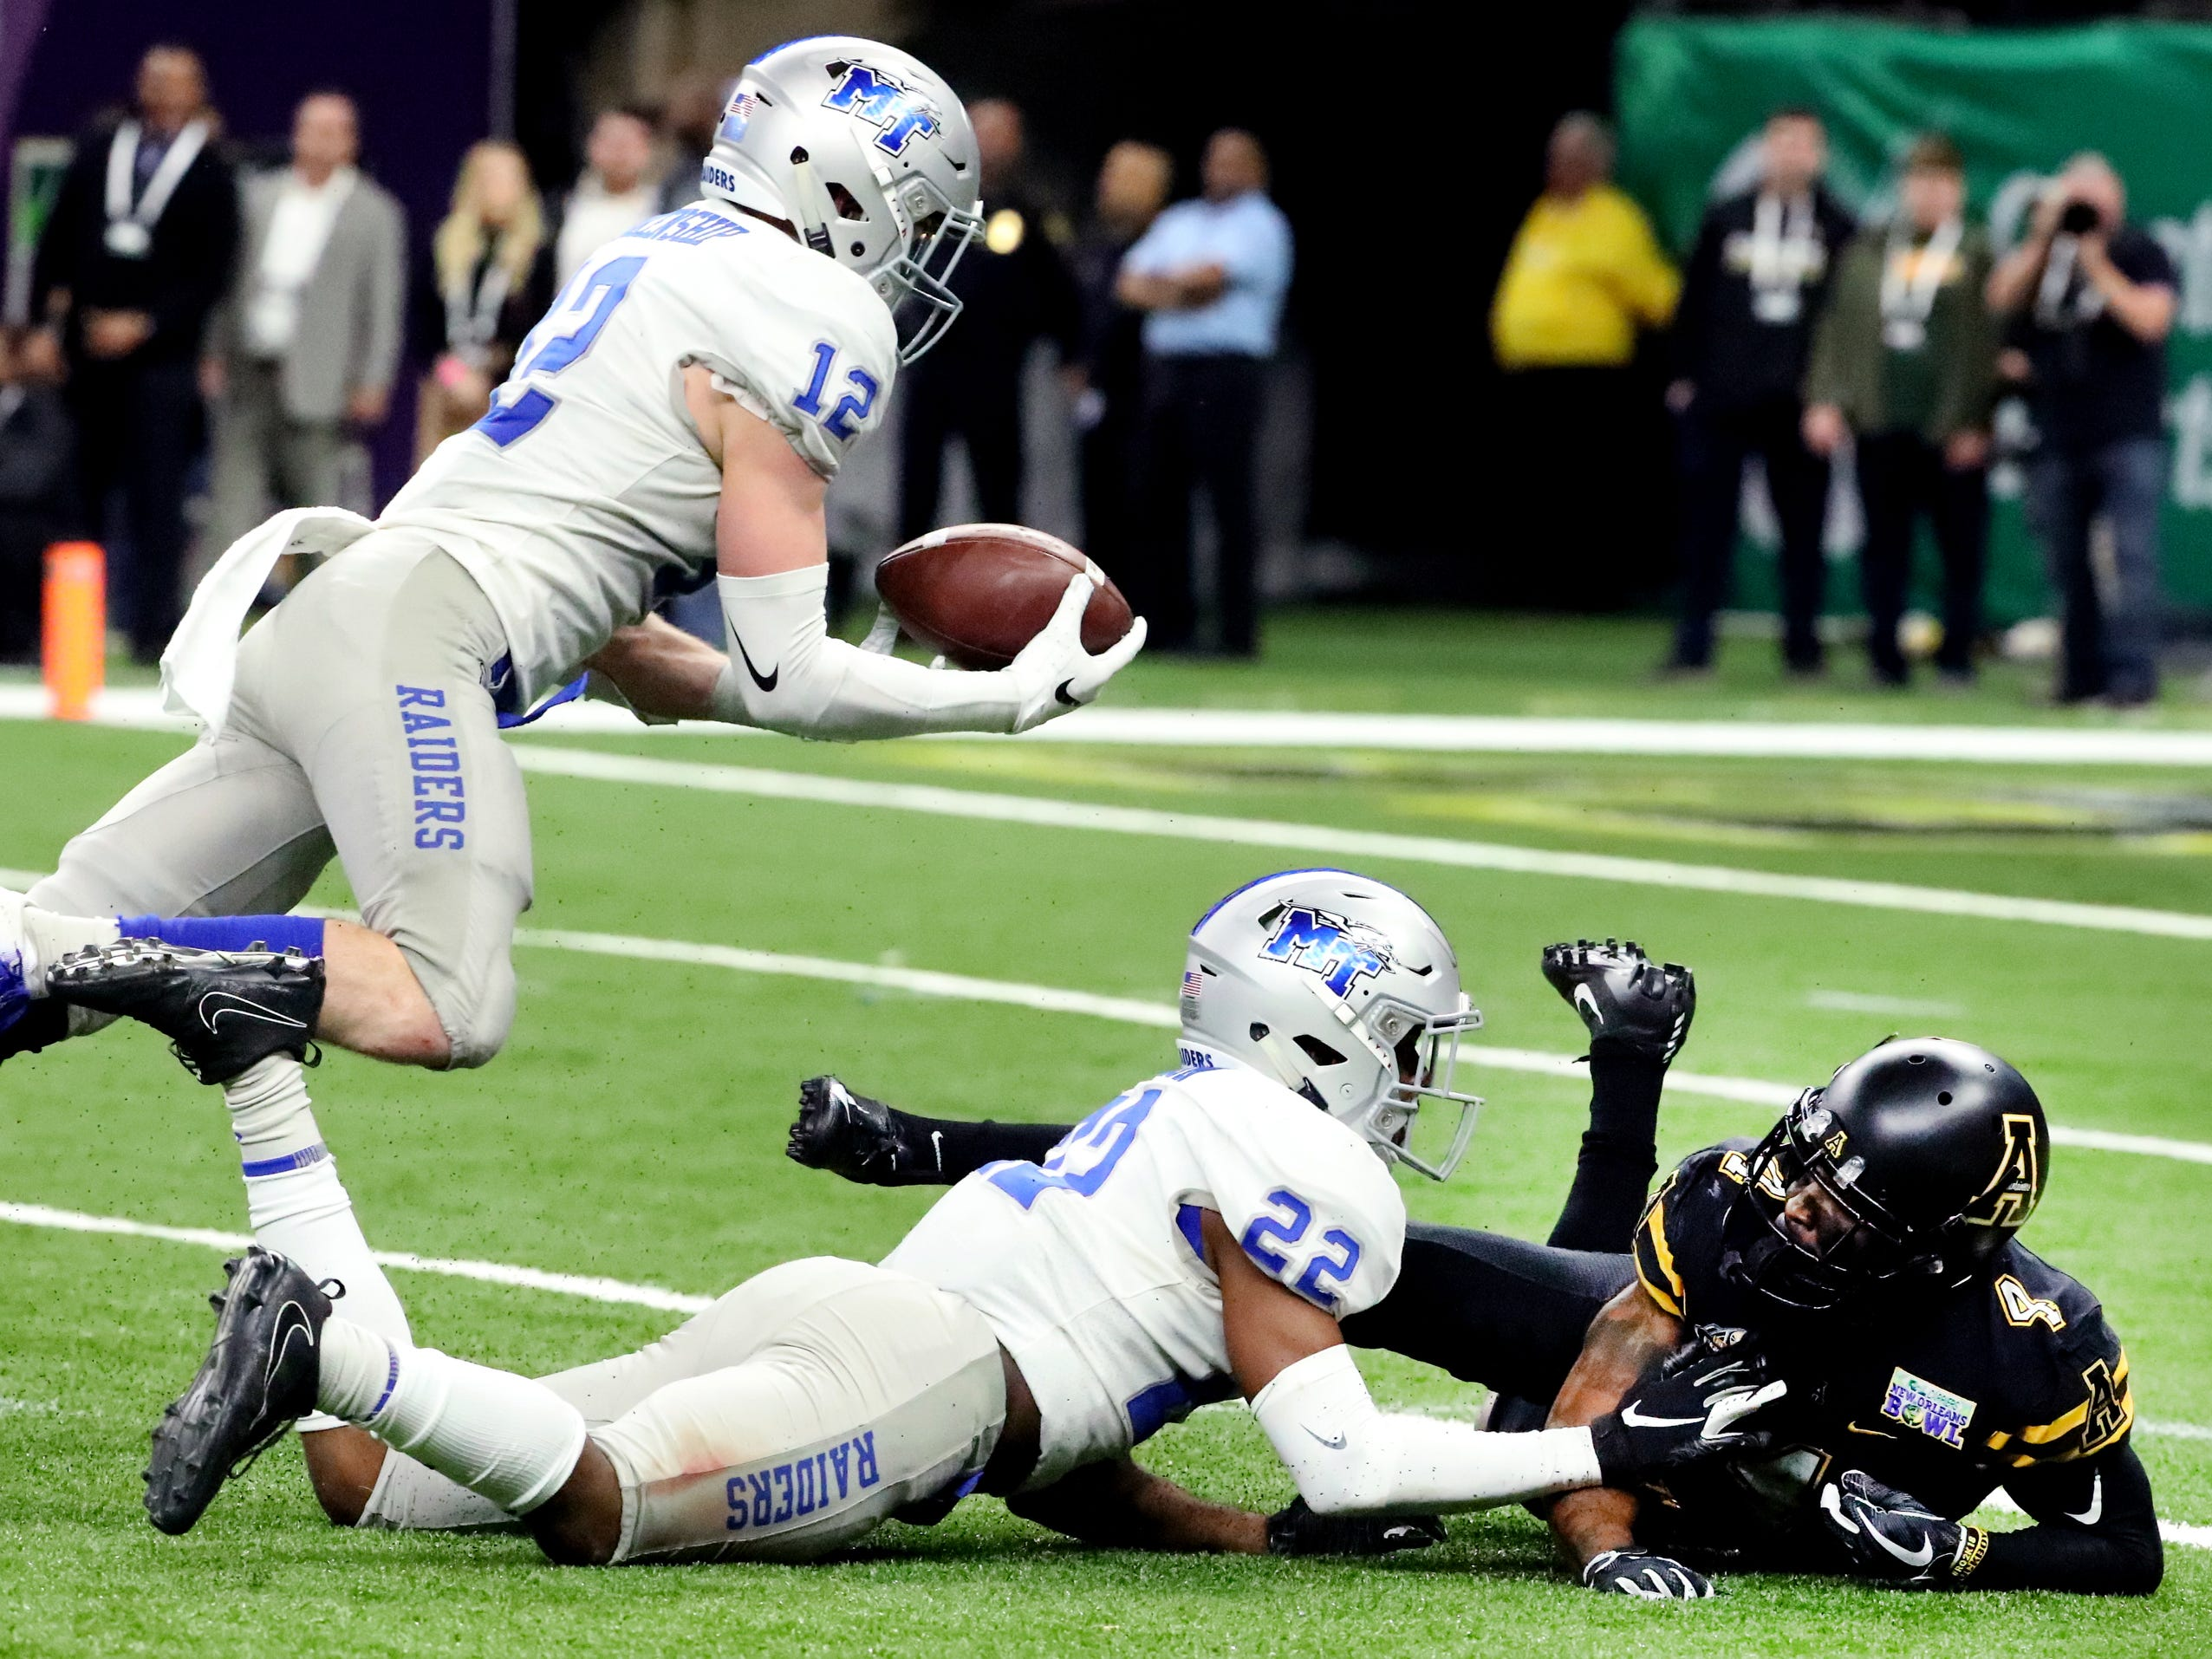 Middle Tennessee Blue Raiders safety Reed Blankenship (12) intercepts a pass intended for Appalachian State Mountaineers wide receiver Dominique Heath (4) as Middle Tennessee Blue Raiders defensive back Cordell Hudson (22) covers him on Saturday, Dec. 15, 2018, during the New Orleans Bowl.